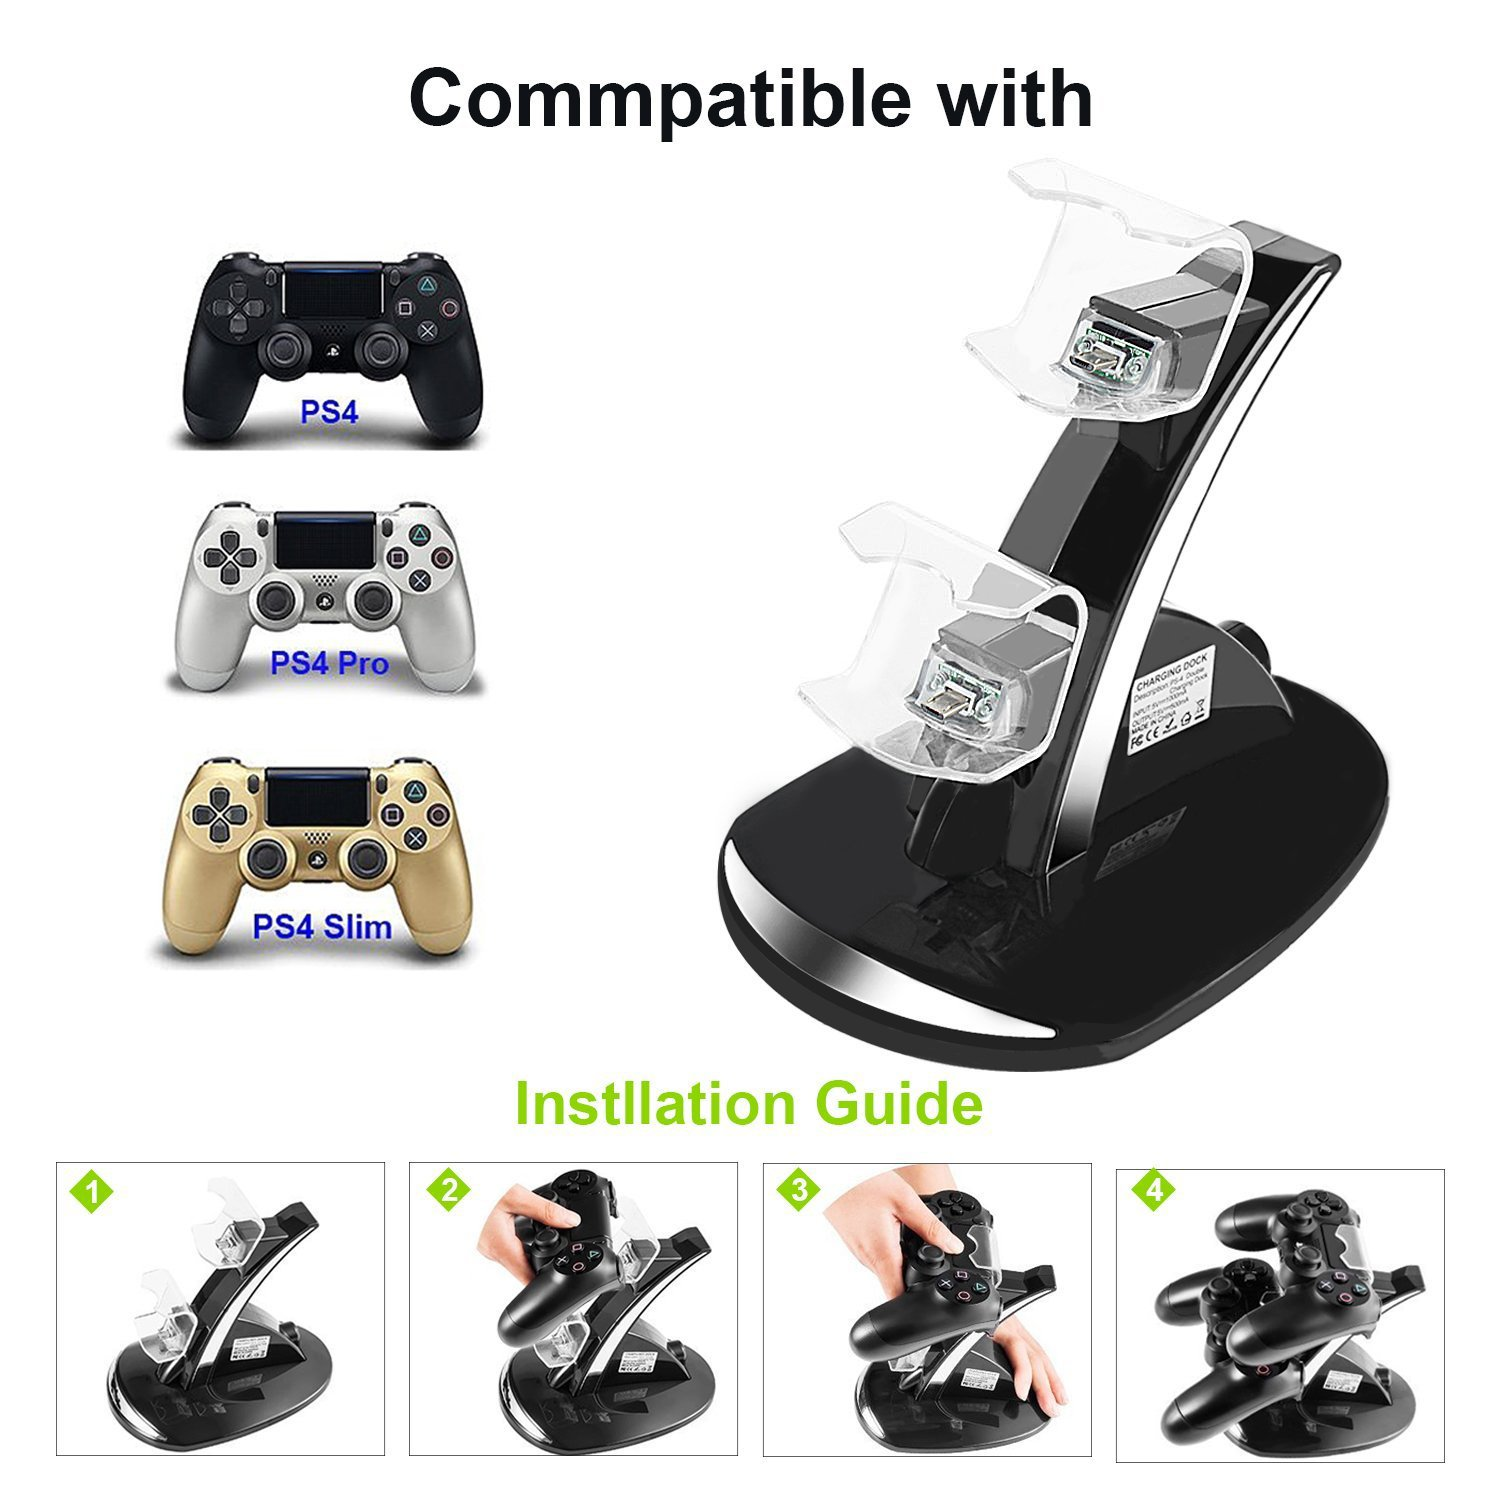 PS4 Controller Charger, DualShock 4 Dual USB Charging Charger Docking Station Stand for Sony Playstation 4 PS4 / PS4 Pro / PS4 Slim Controller - Black